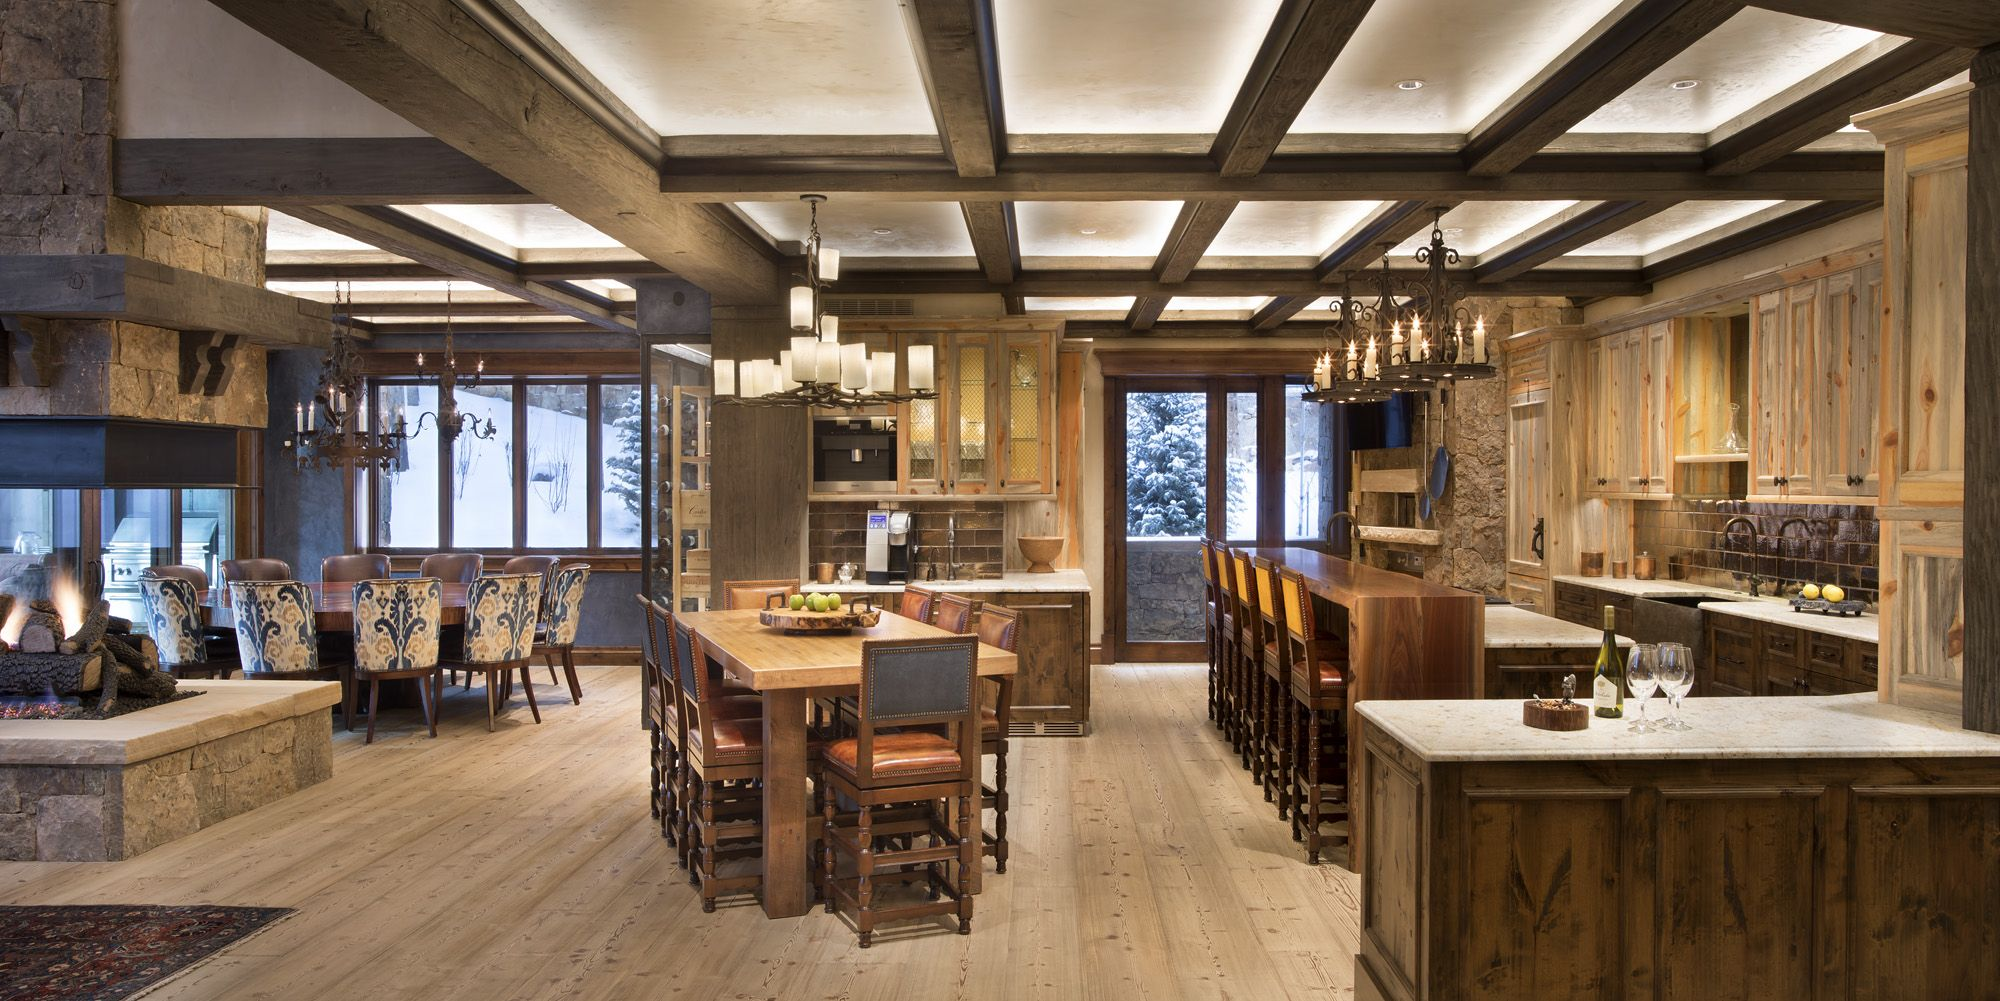 See this rustic Best of Show Dream Kitchen by Pat Conner from Kansas ...